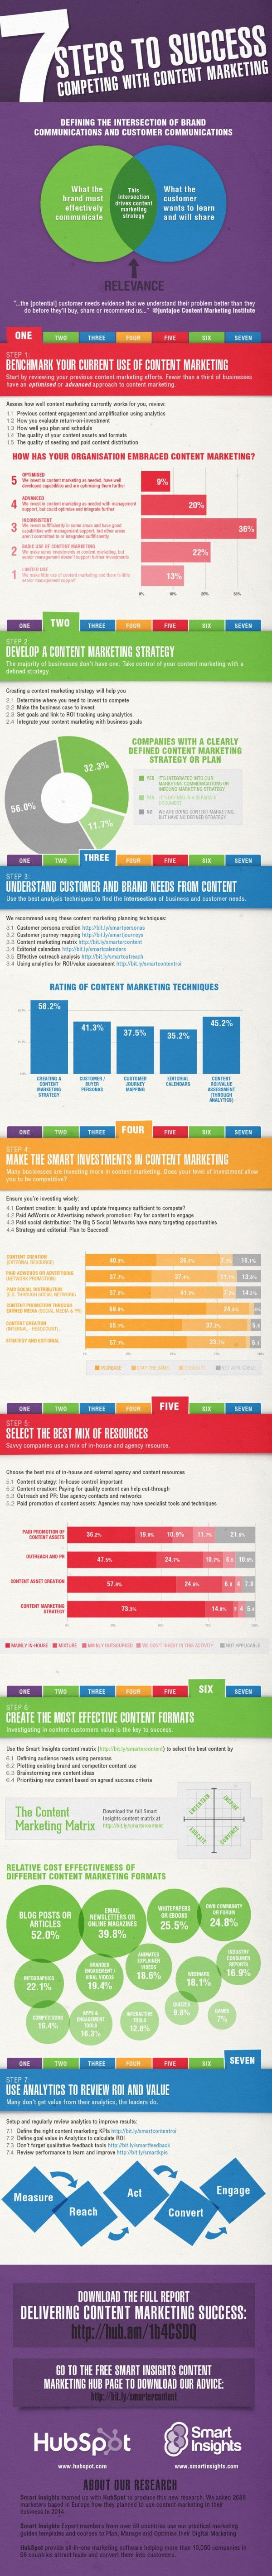 managing-content-marketing-infographic